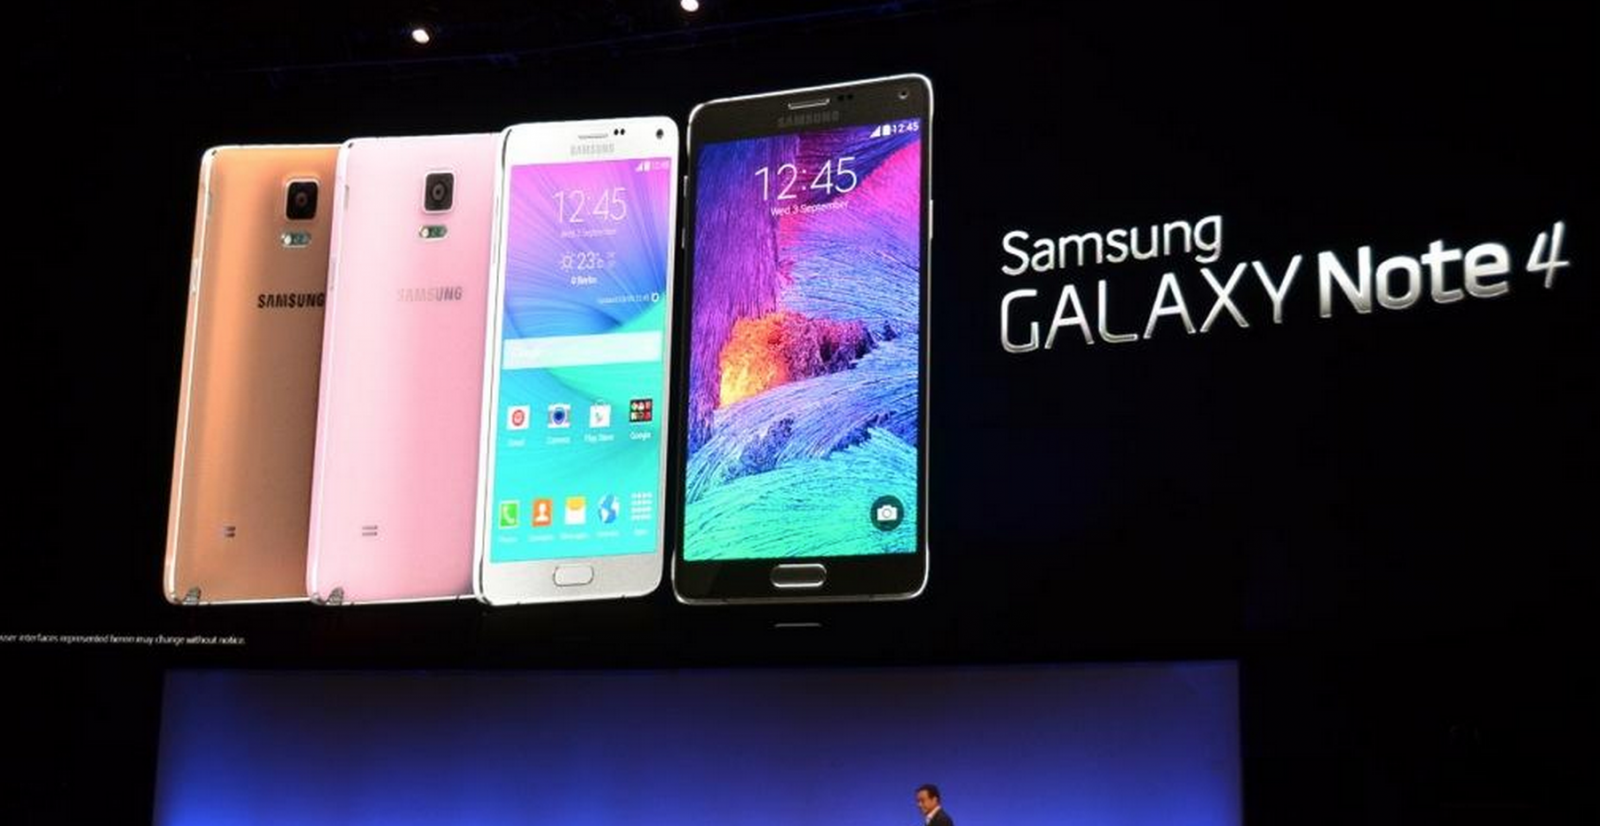 Samsung Galaxy Note 4 Expected to be Released Before Diwali in India